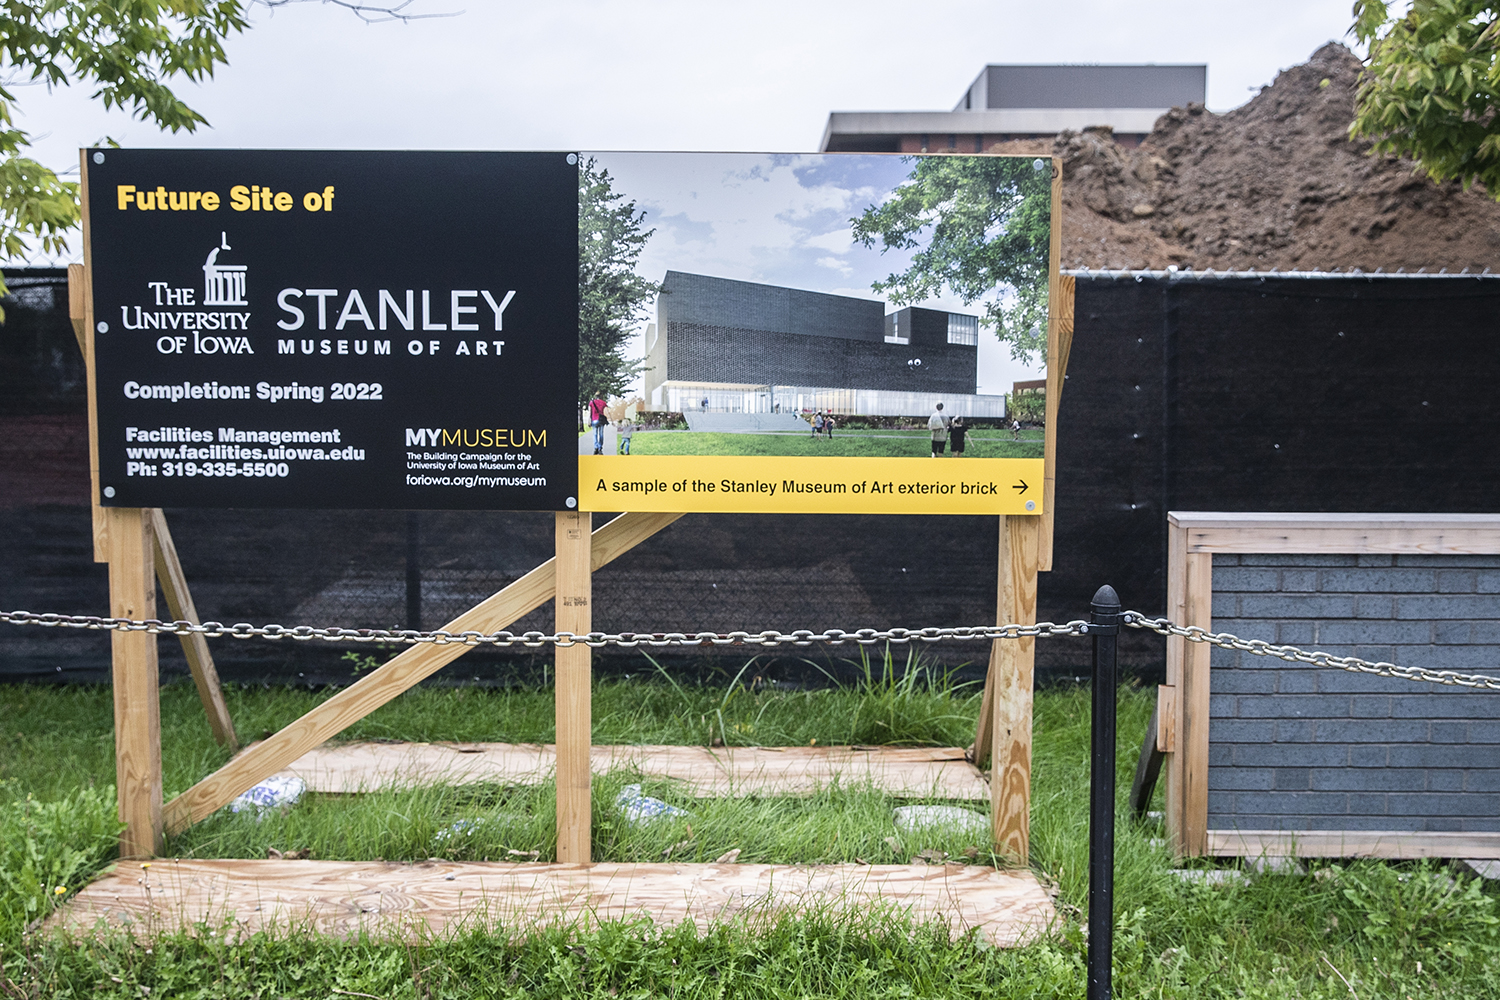 The future site of the new Stanley Art Museum is seen on Friday, August 27th, 2019. The Stanley Art museum will relocate from the Iowa Memorial Union to its own building across from the university library.